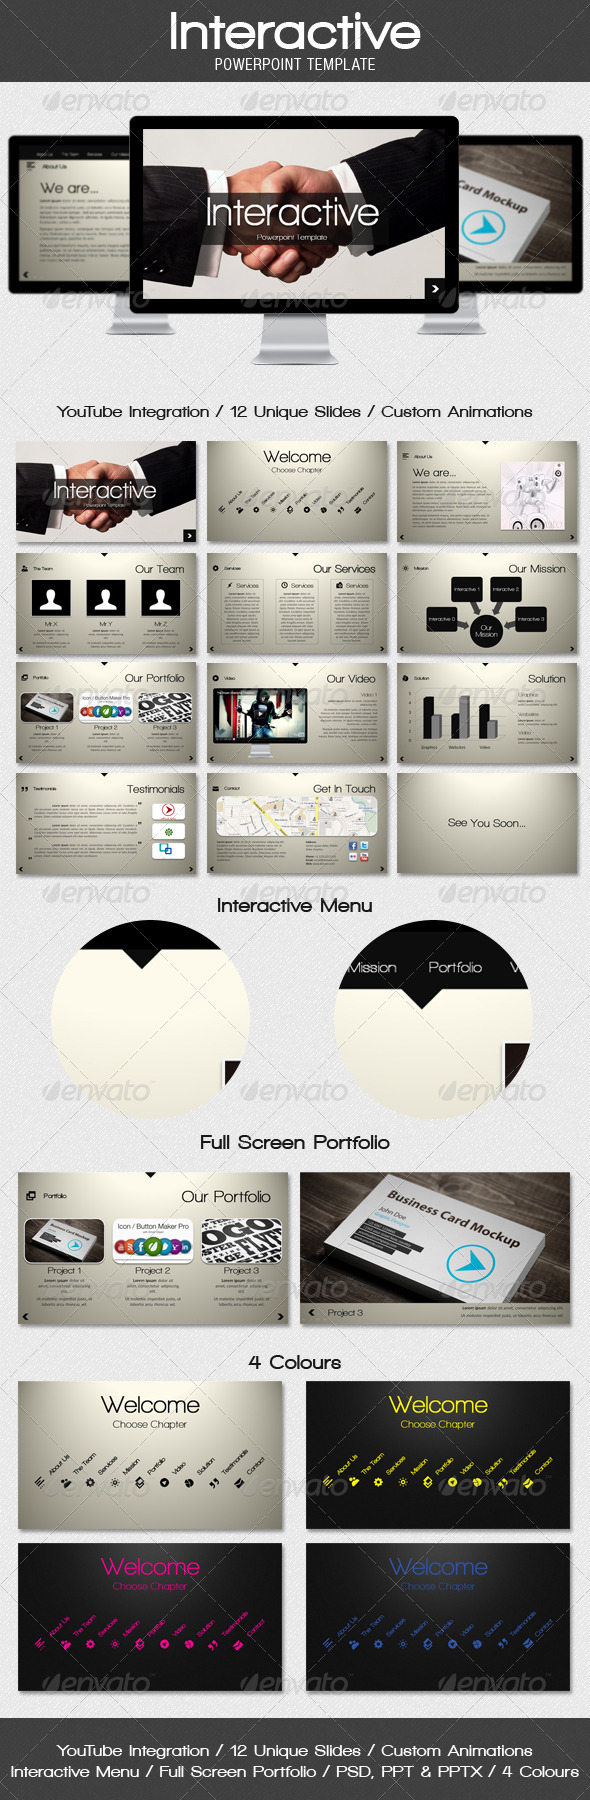 Interactive - Powerpoint Template